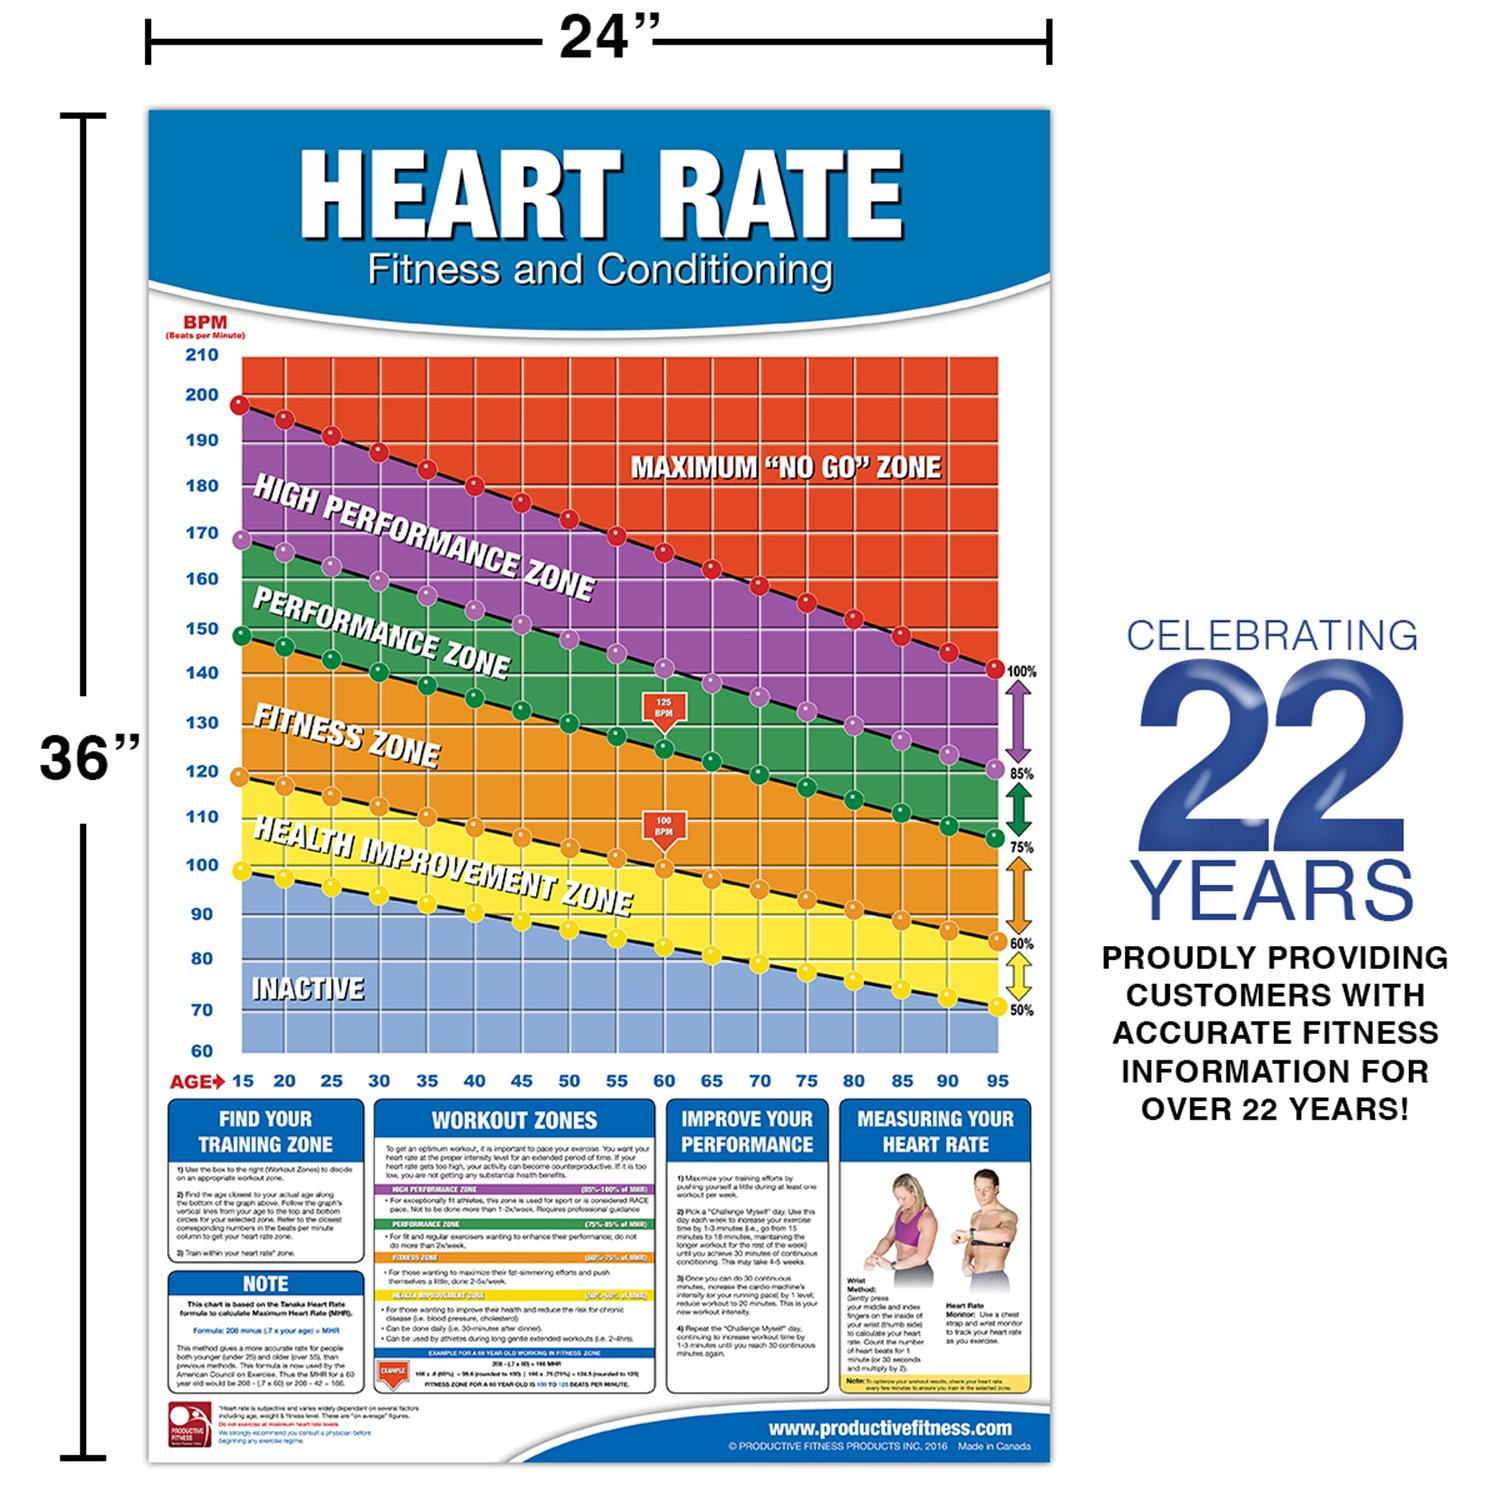 Fitness heart rate chartposter fitness heart rate poster fitness heart rate chartposter fitness heart rate poster training zone chart workout zone maximum heart rate poster training by heart rate poster nvjuhfo Images